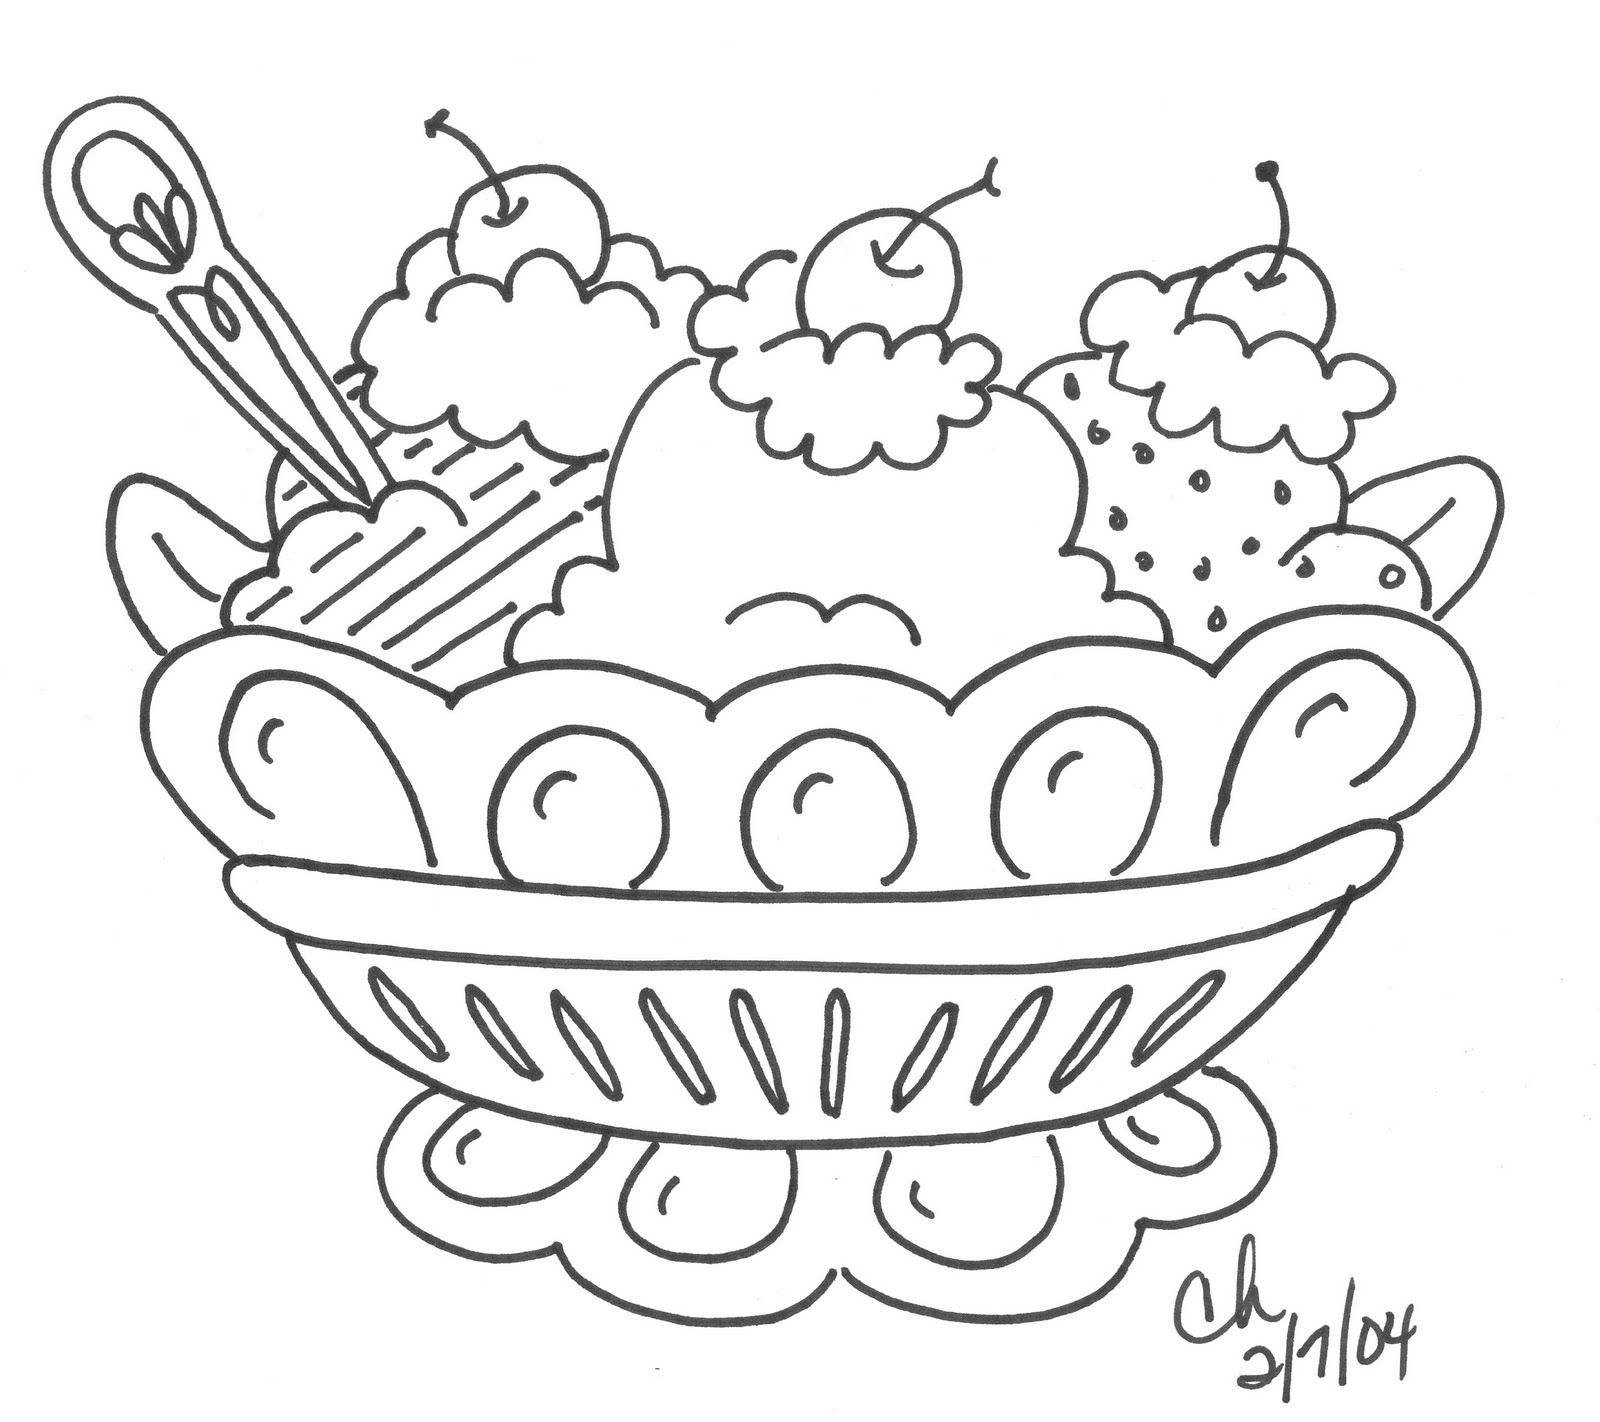 Banana split ice cream sundae coloring page coloring for Ice cream sundae coloring page